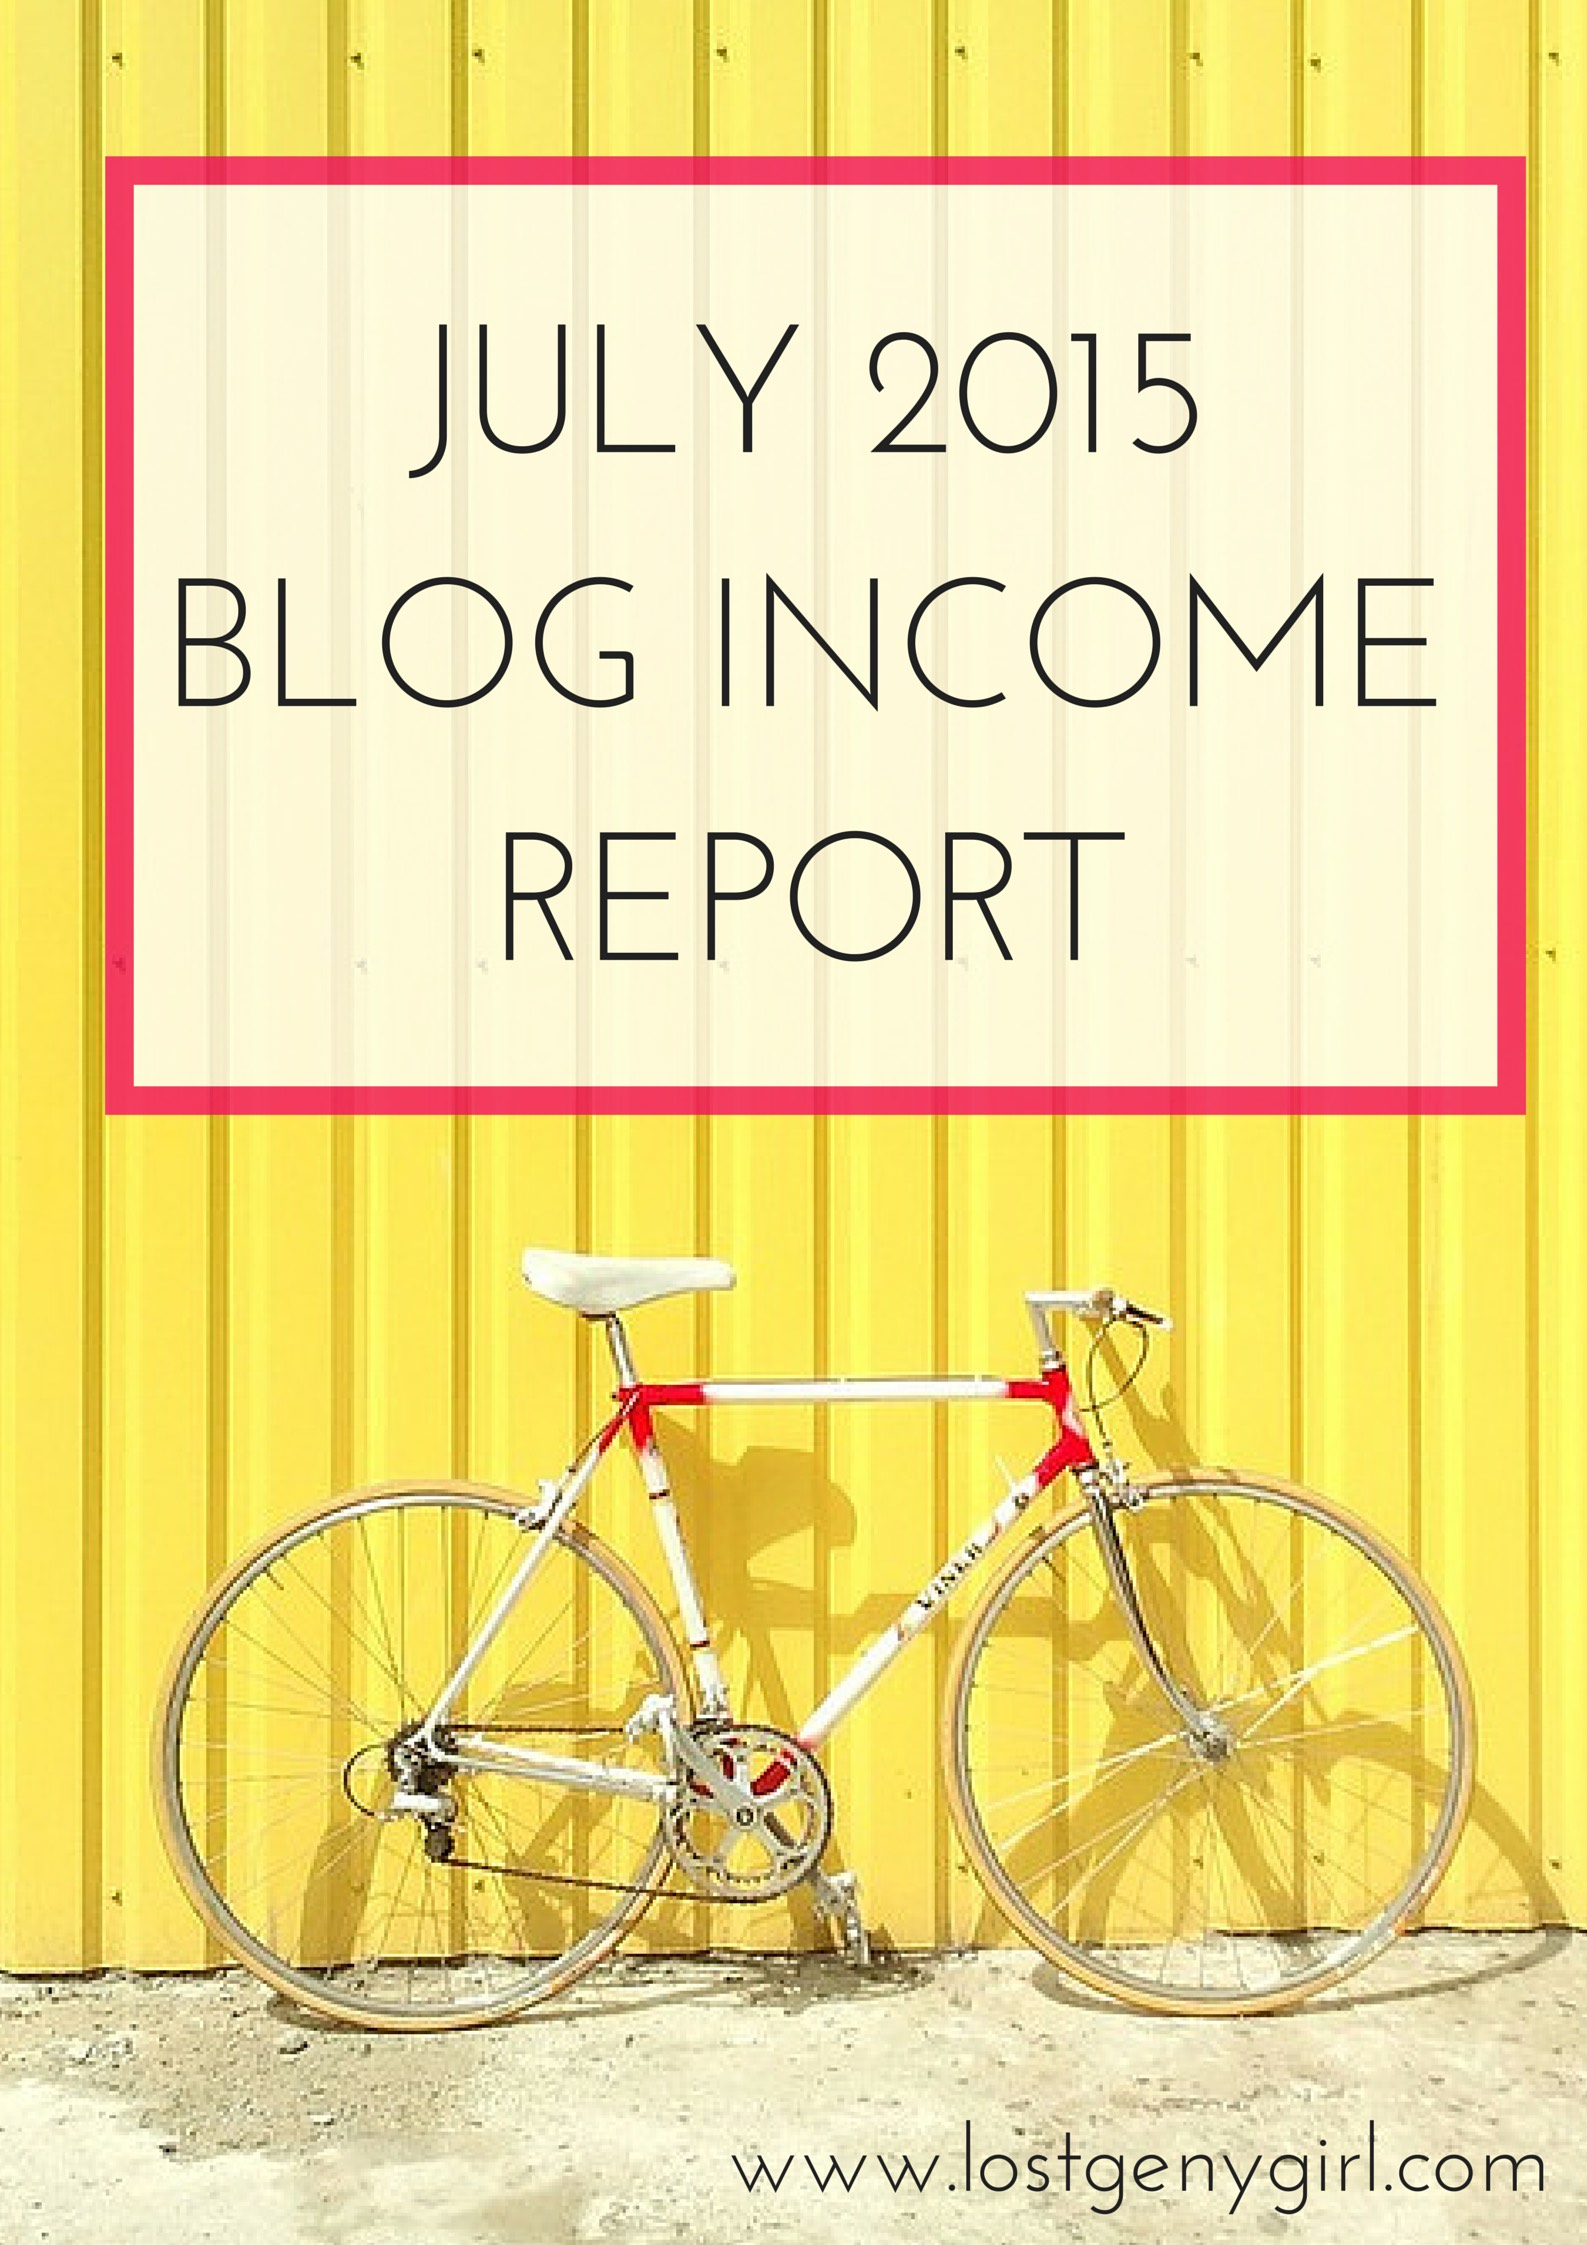 July Blog Income Report